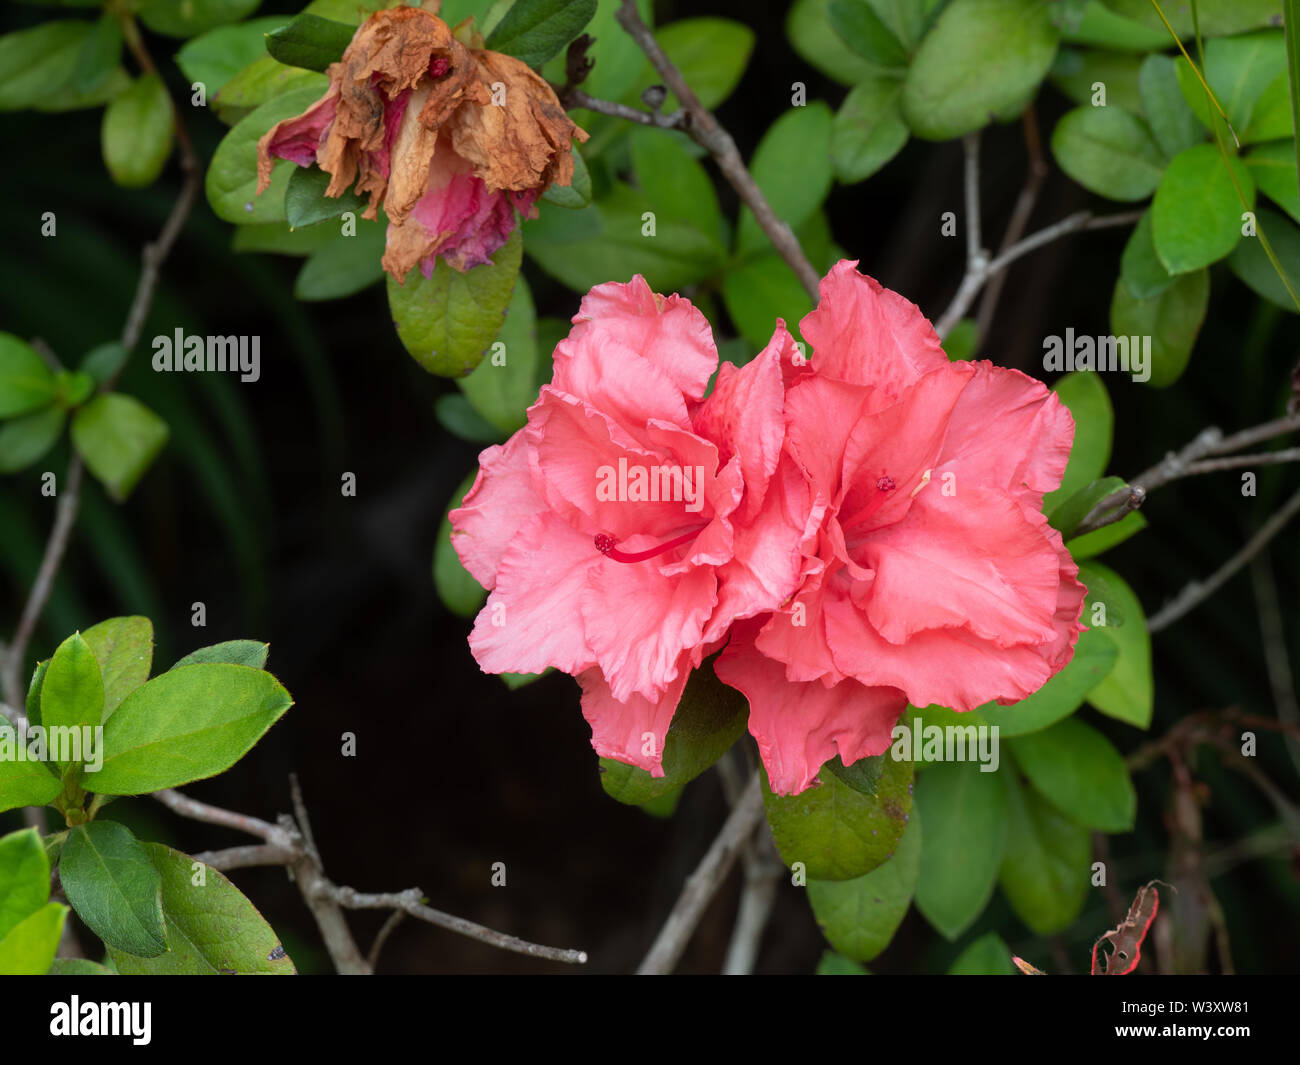 Closeup Pink Azalea Flowers With Wilted Flowers And Green Leaves Stock Photo Alamy